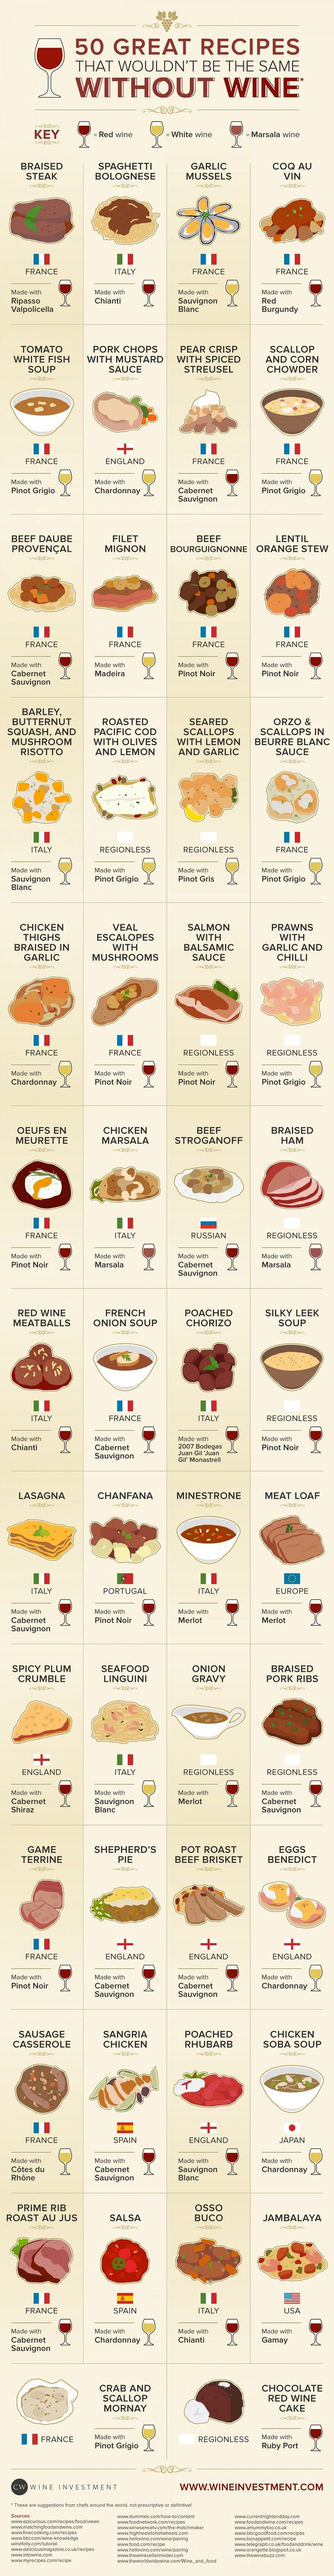 50 Great Recipes That Wouldn't Be the Same Without Wine #infographic #Food #Wine